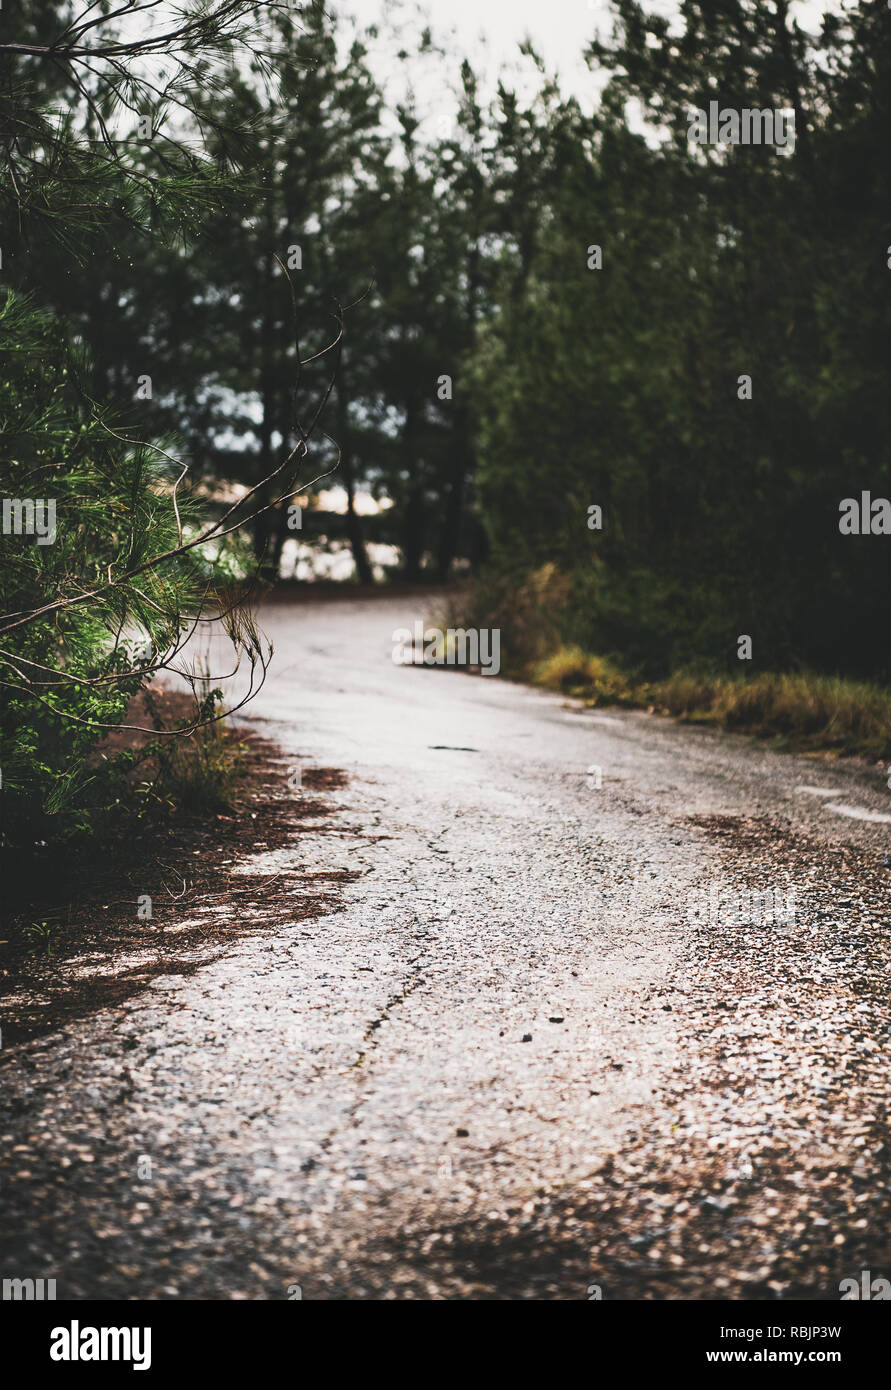 Moody road in the mountain wood between trees - Stock Image